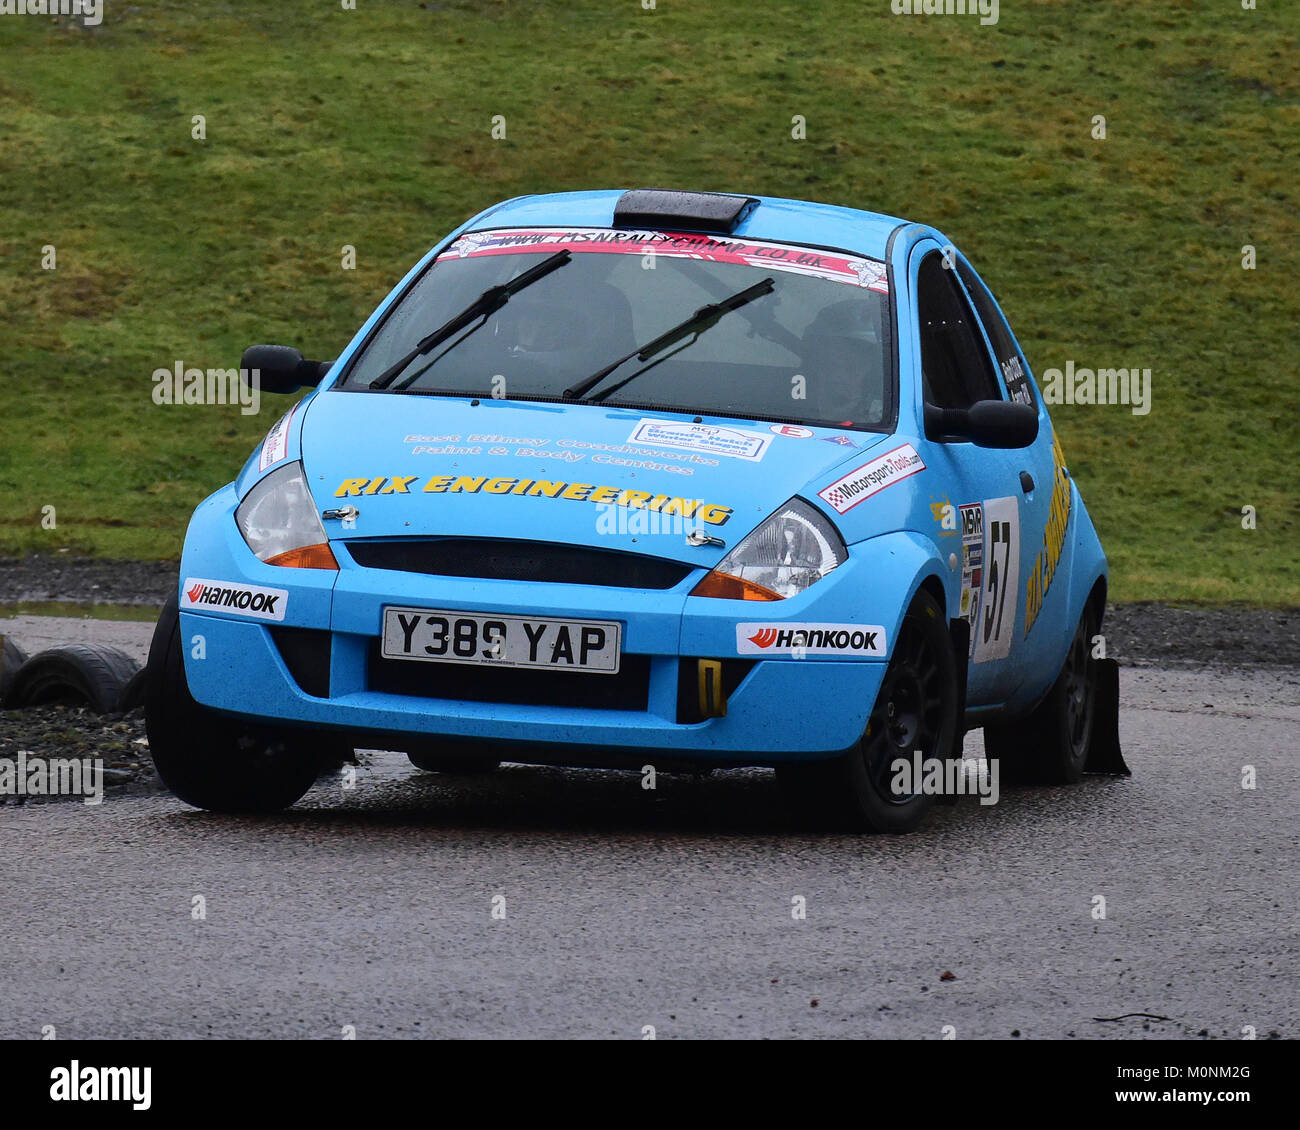 Aaron Rix Rob Cook Ford Ka Mgj Rally Stages Chelmsford Motor Club Brands Hatch Saturday Th January  Msv Circuit Rally Championship Ms